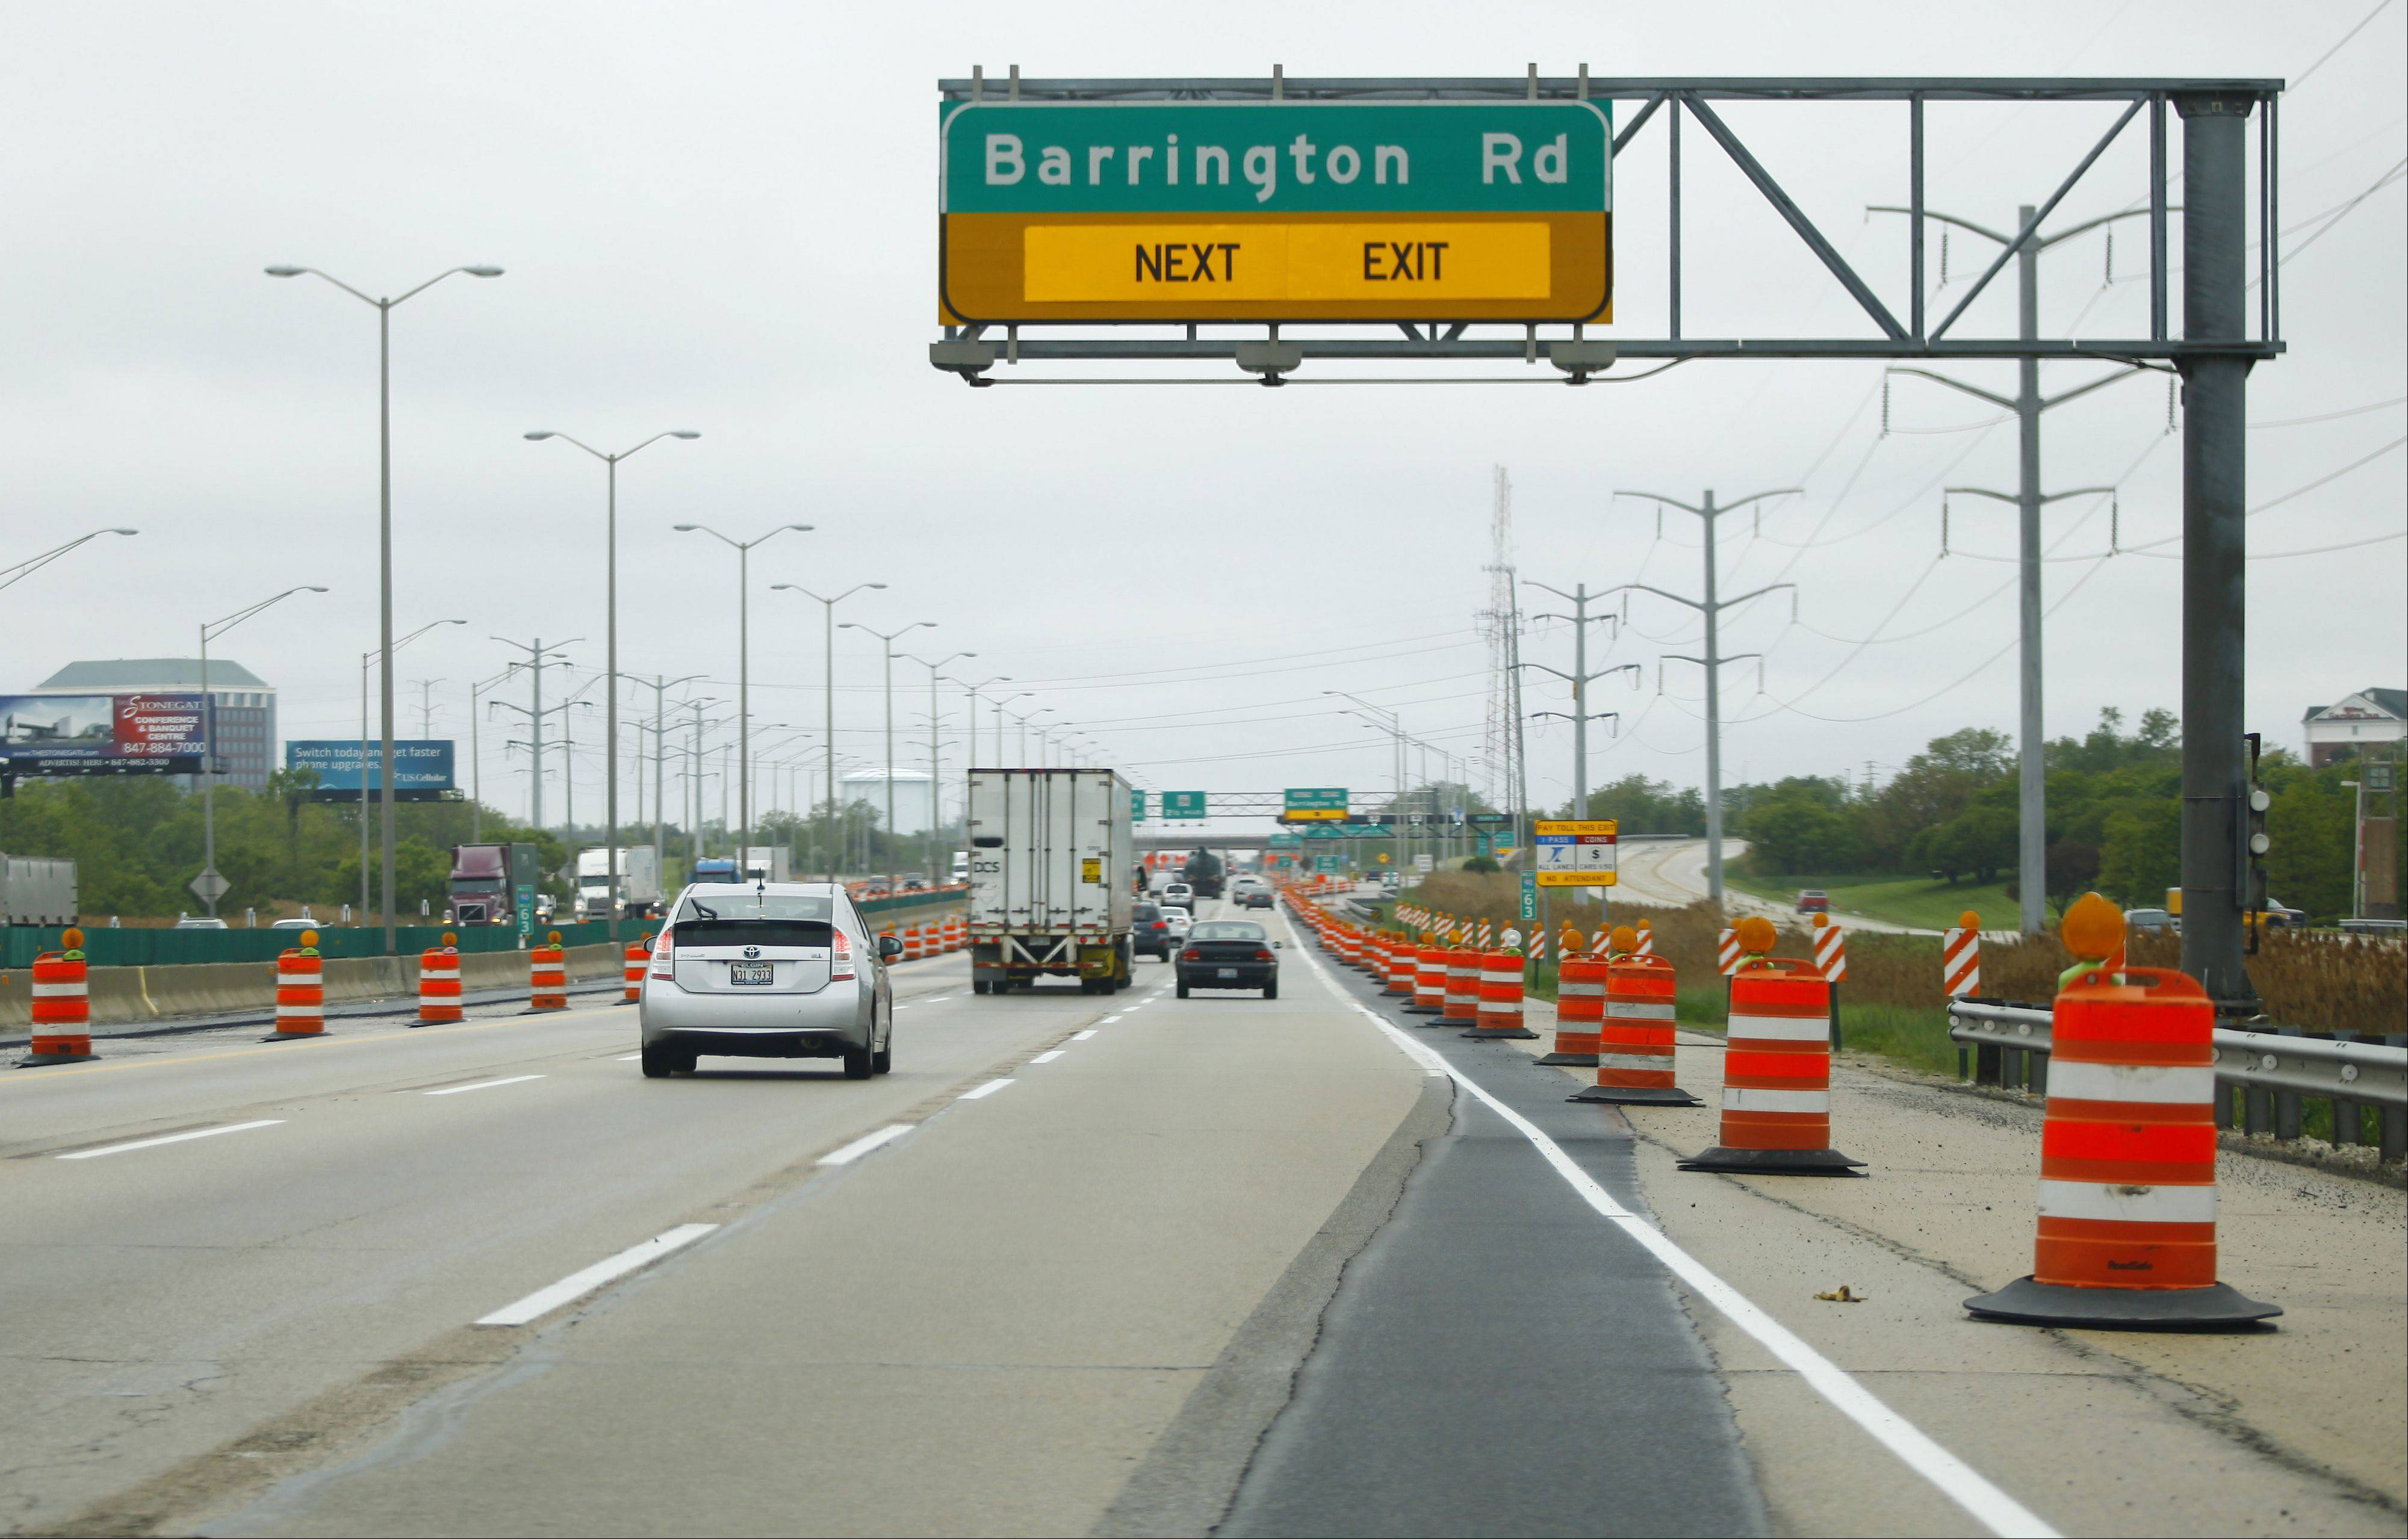 Work is expected to begin in May on reconstruction of the Barrington Road bridge over the Jane Addams Memorial Tollway in Hoffman Estates. The work, expected to cost between $65 million and $70 million, includes the construction of new interchange ramps for traffic to and from the west.